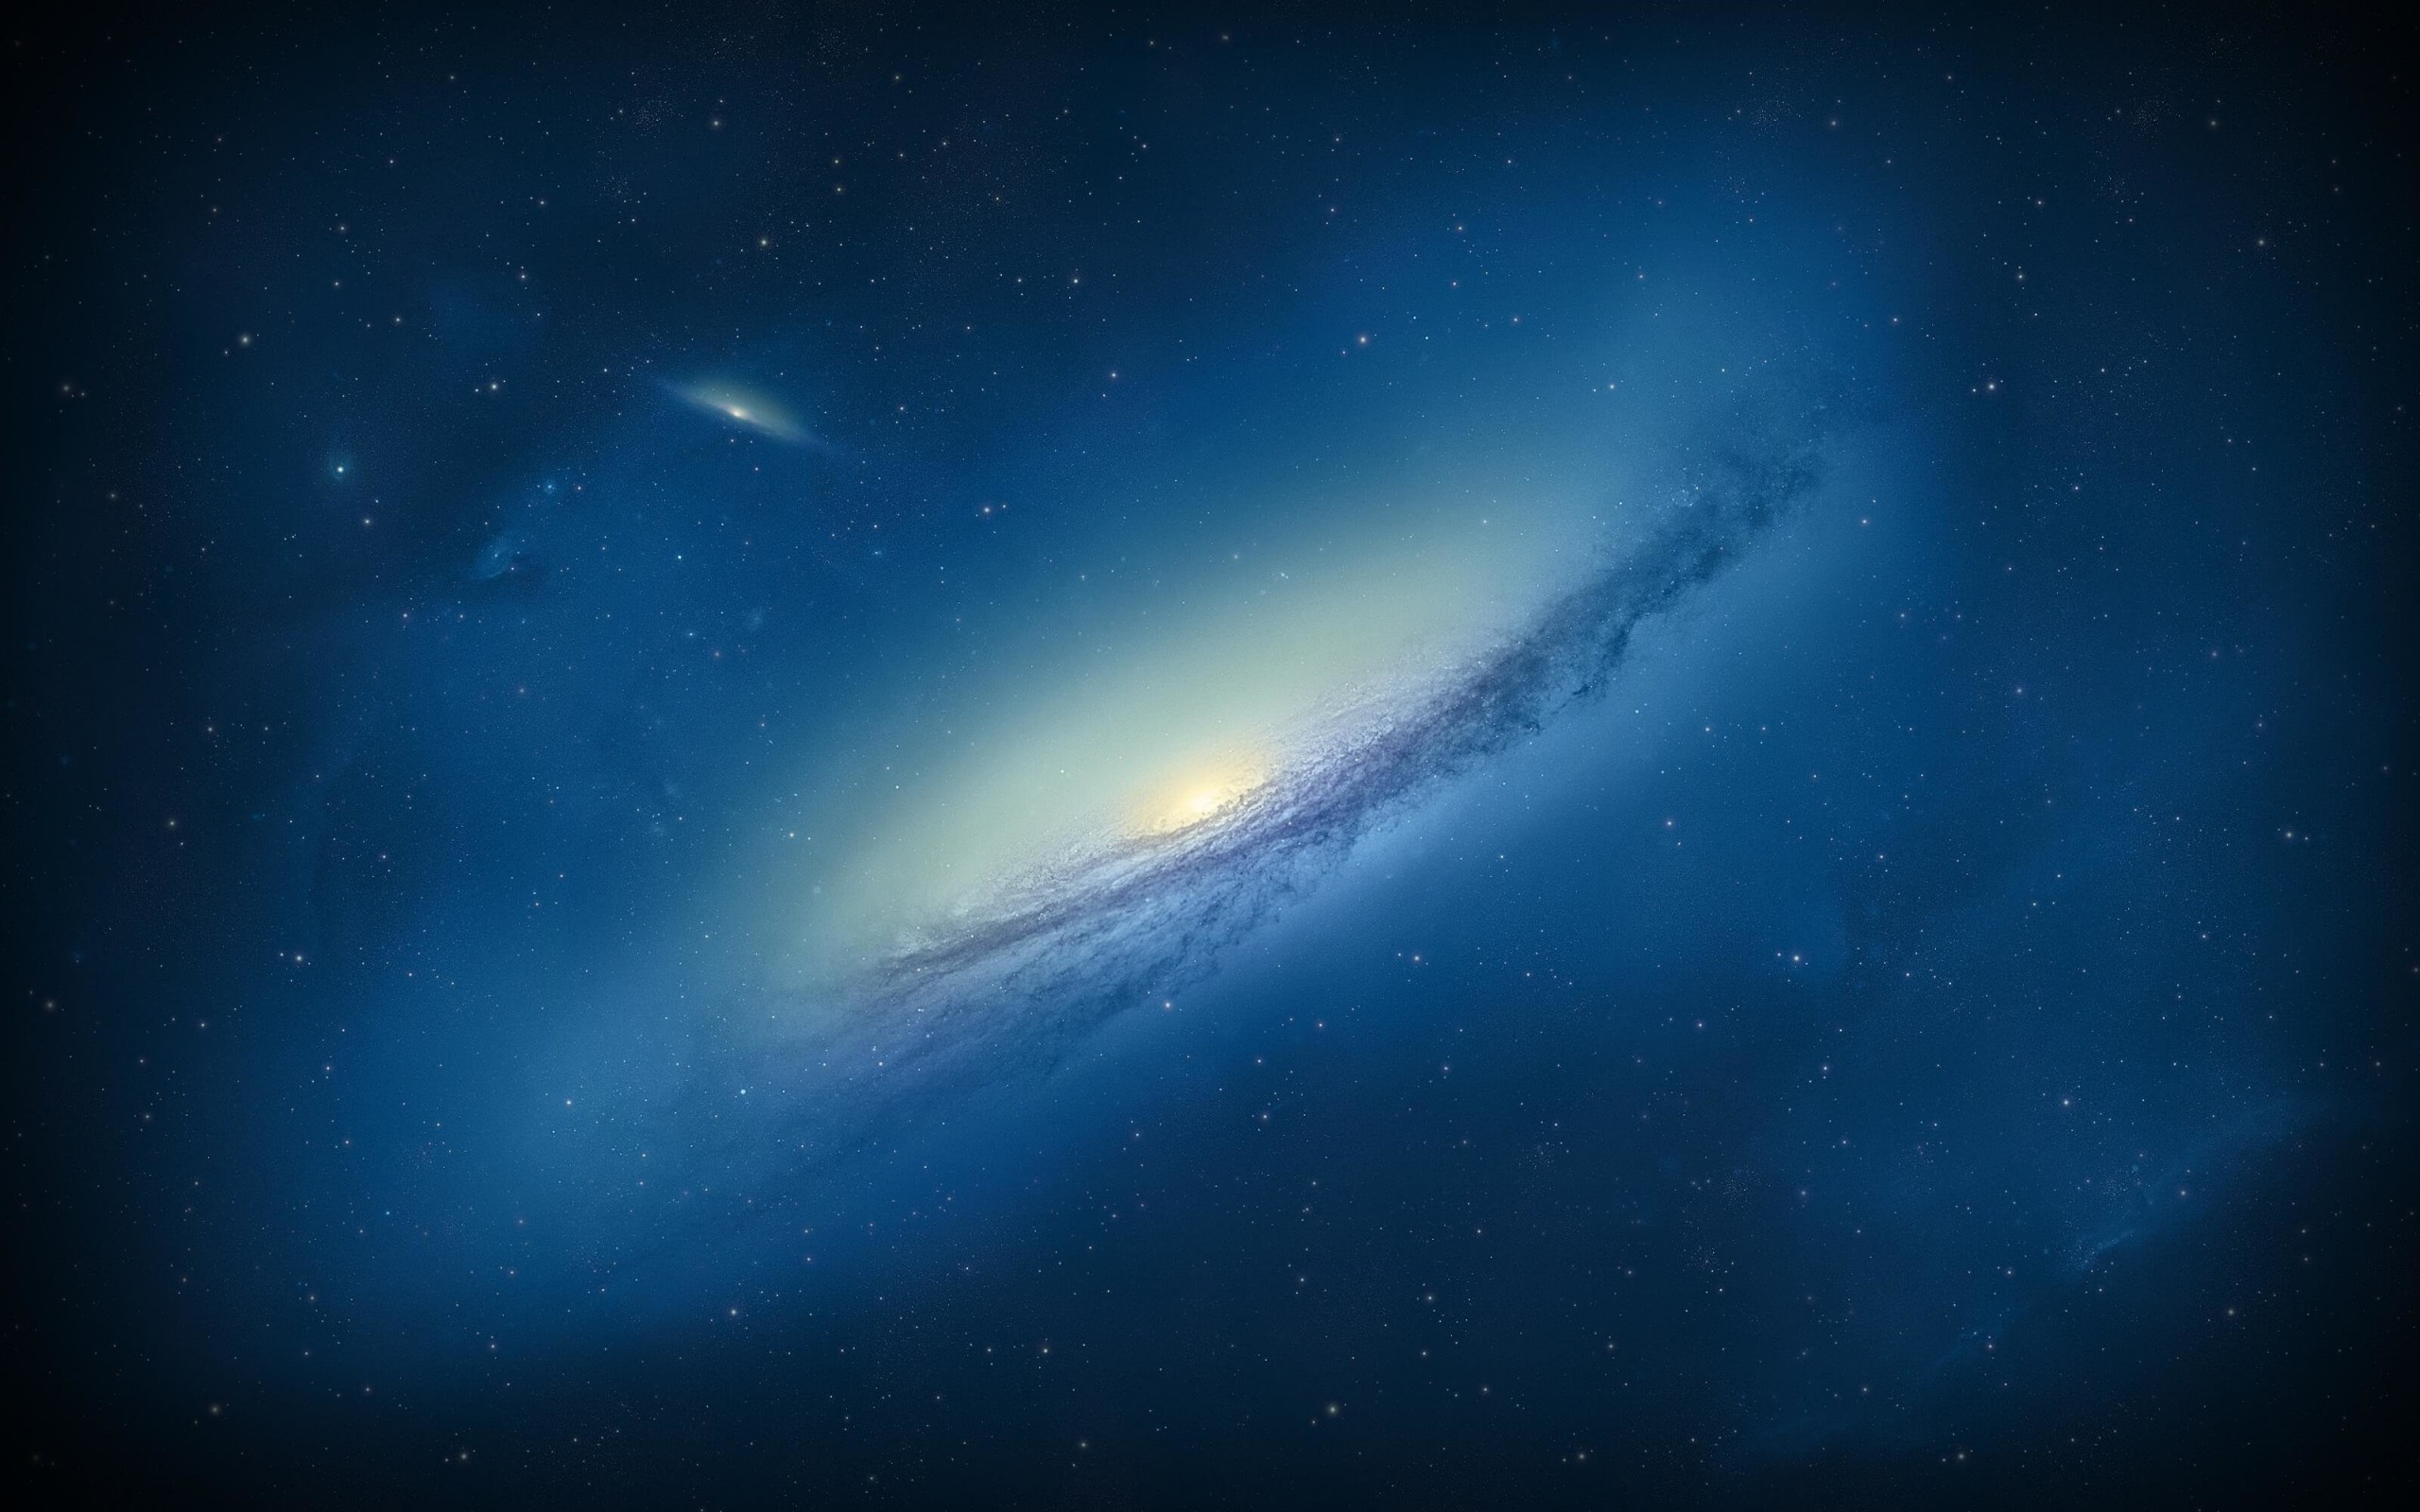 Galaxy NGC 3190 Wallpaper for Desktop 2560x1600